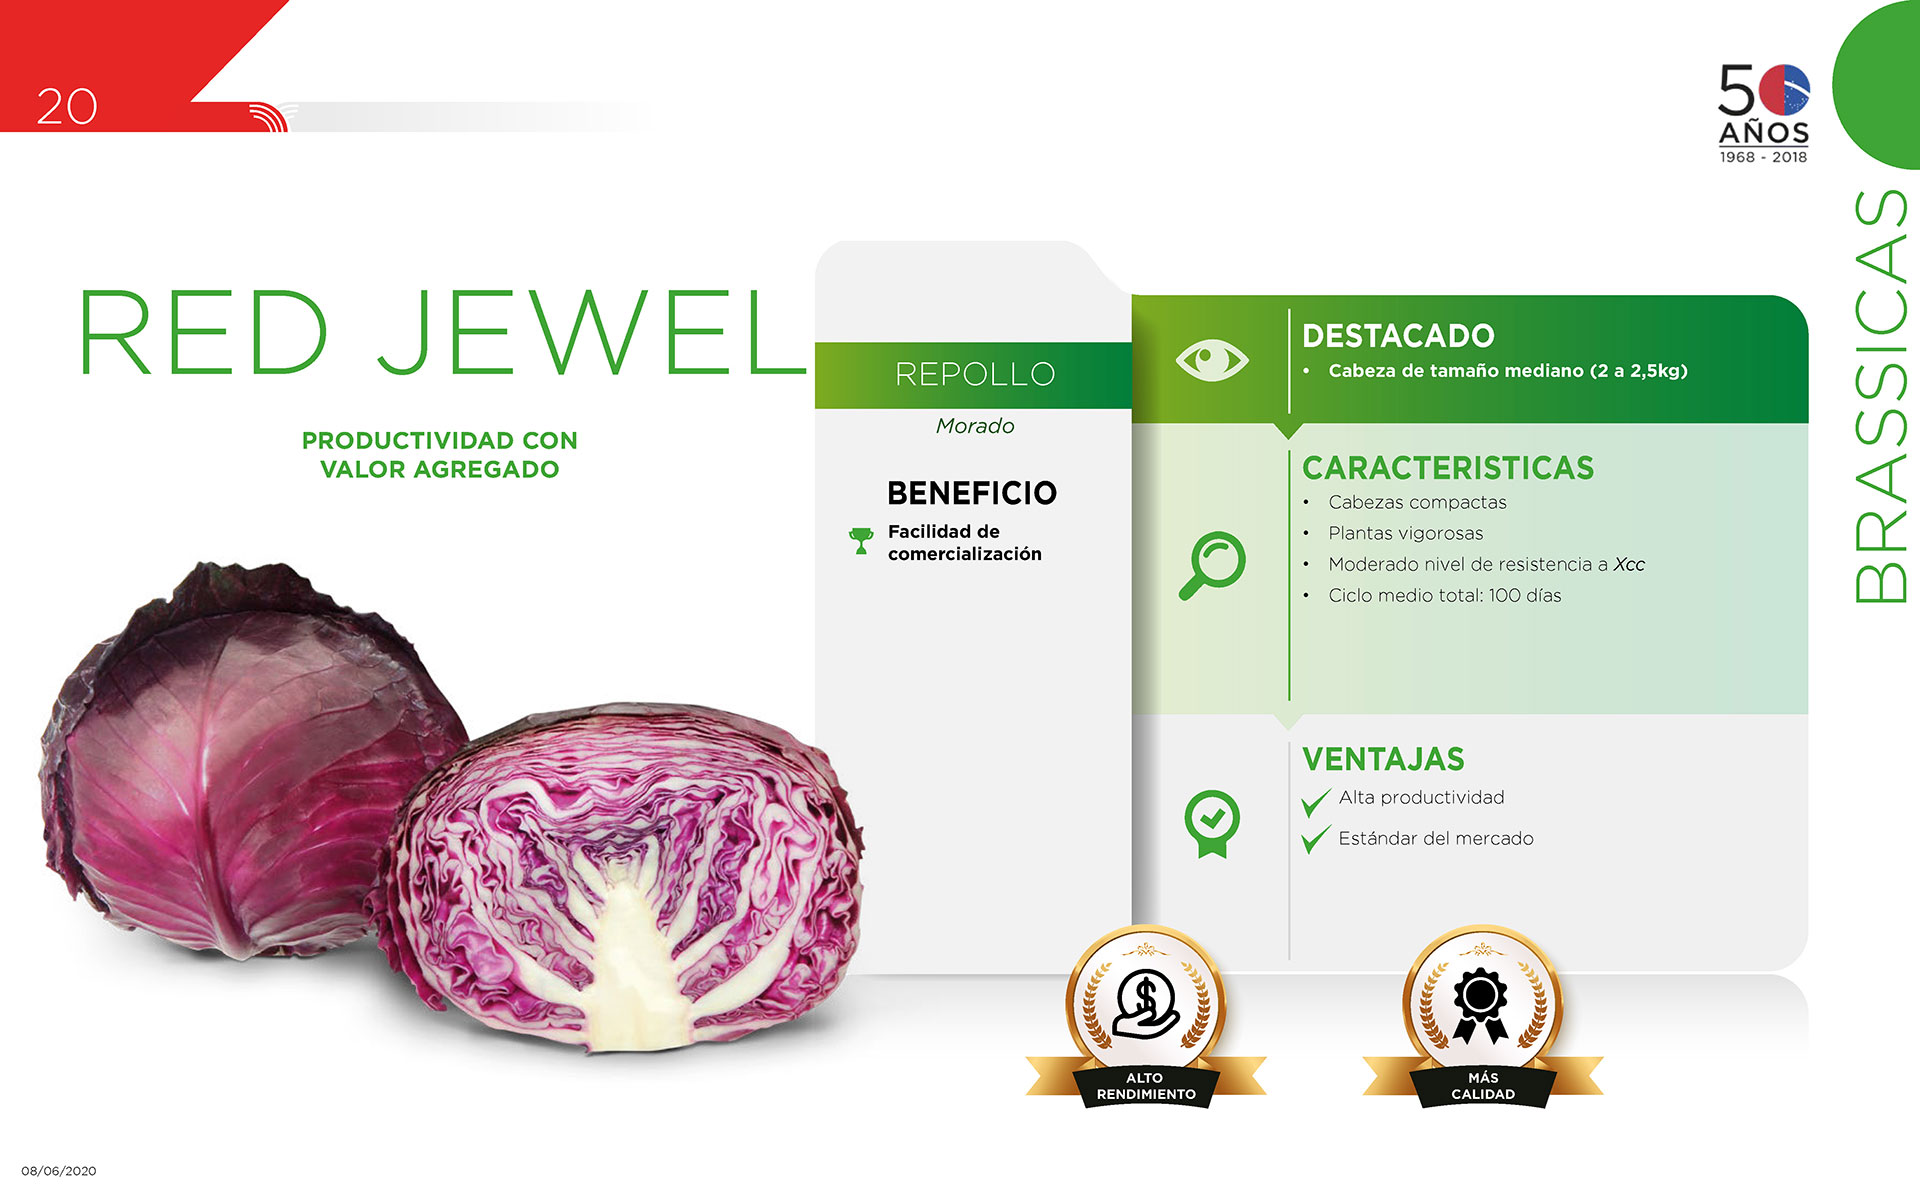 Red Jewel - Brassicas